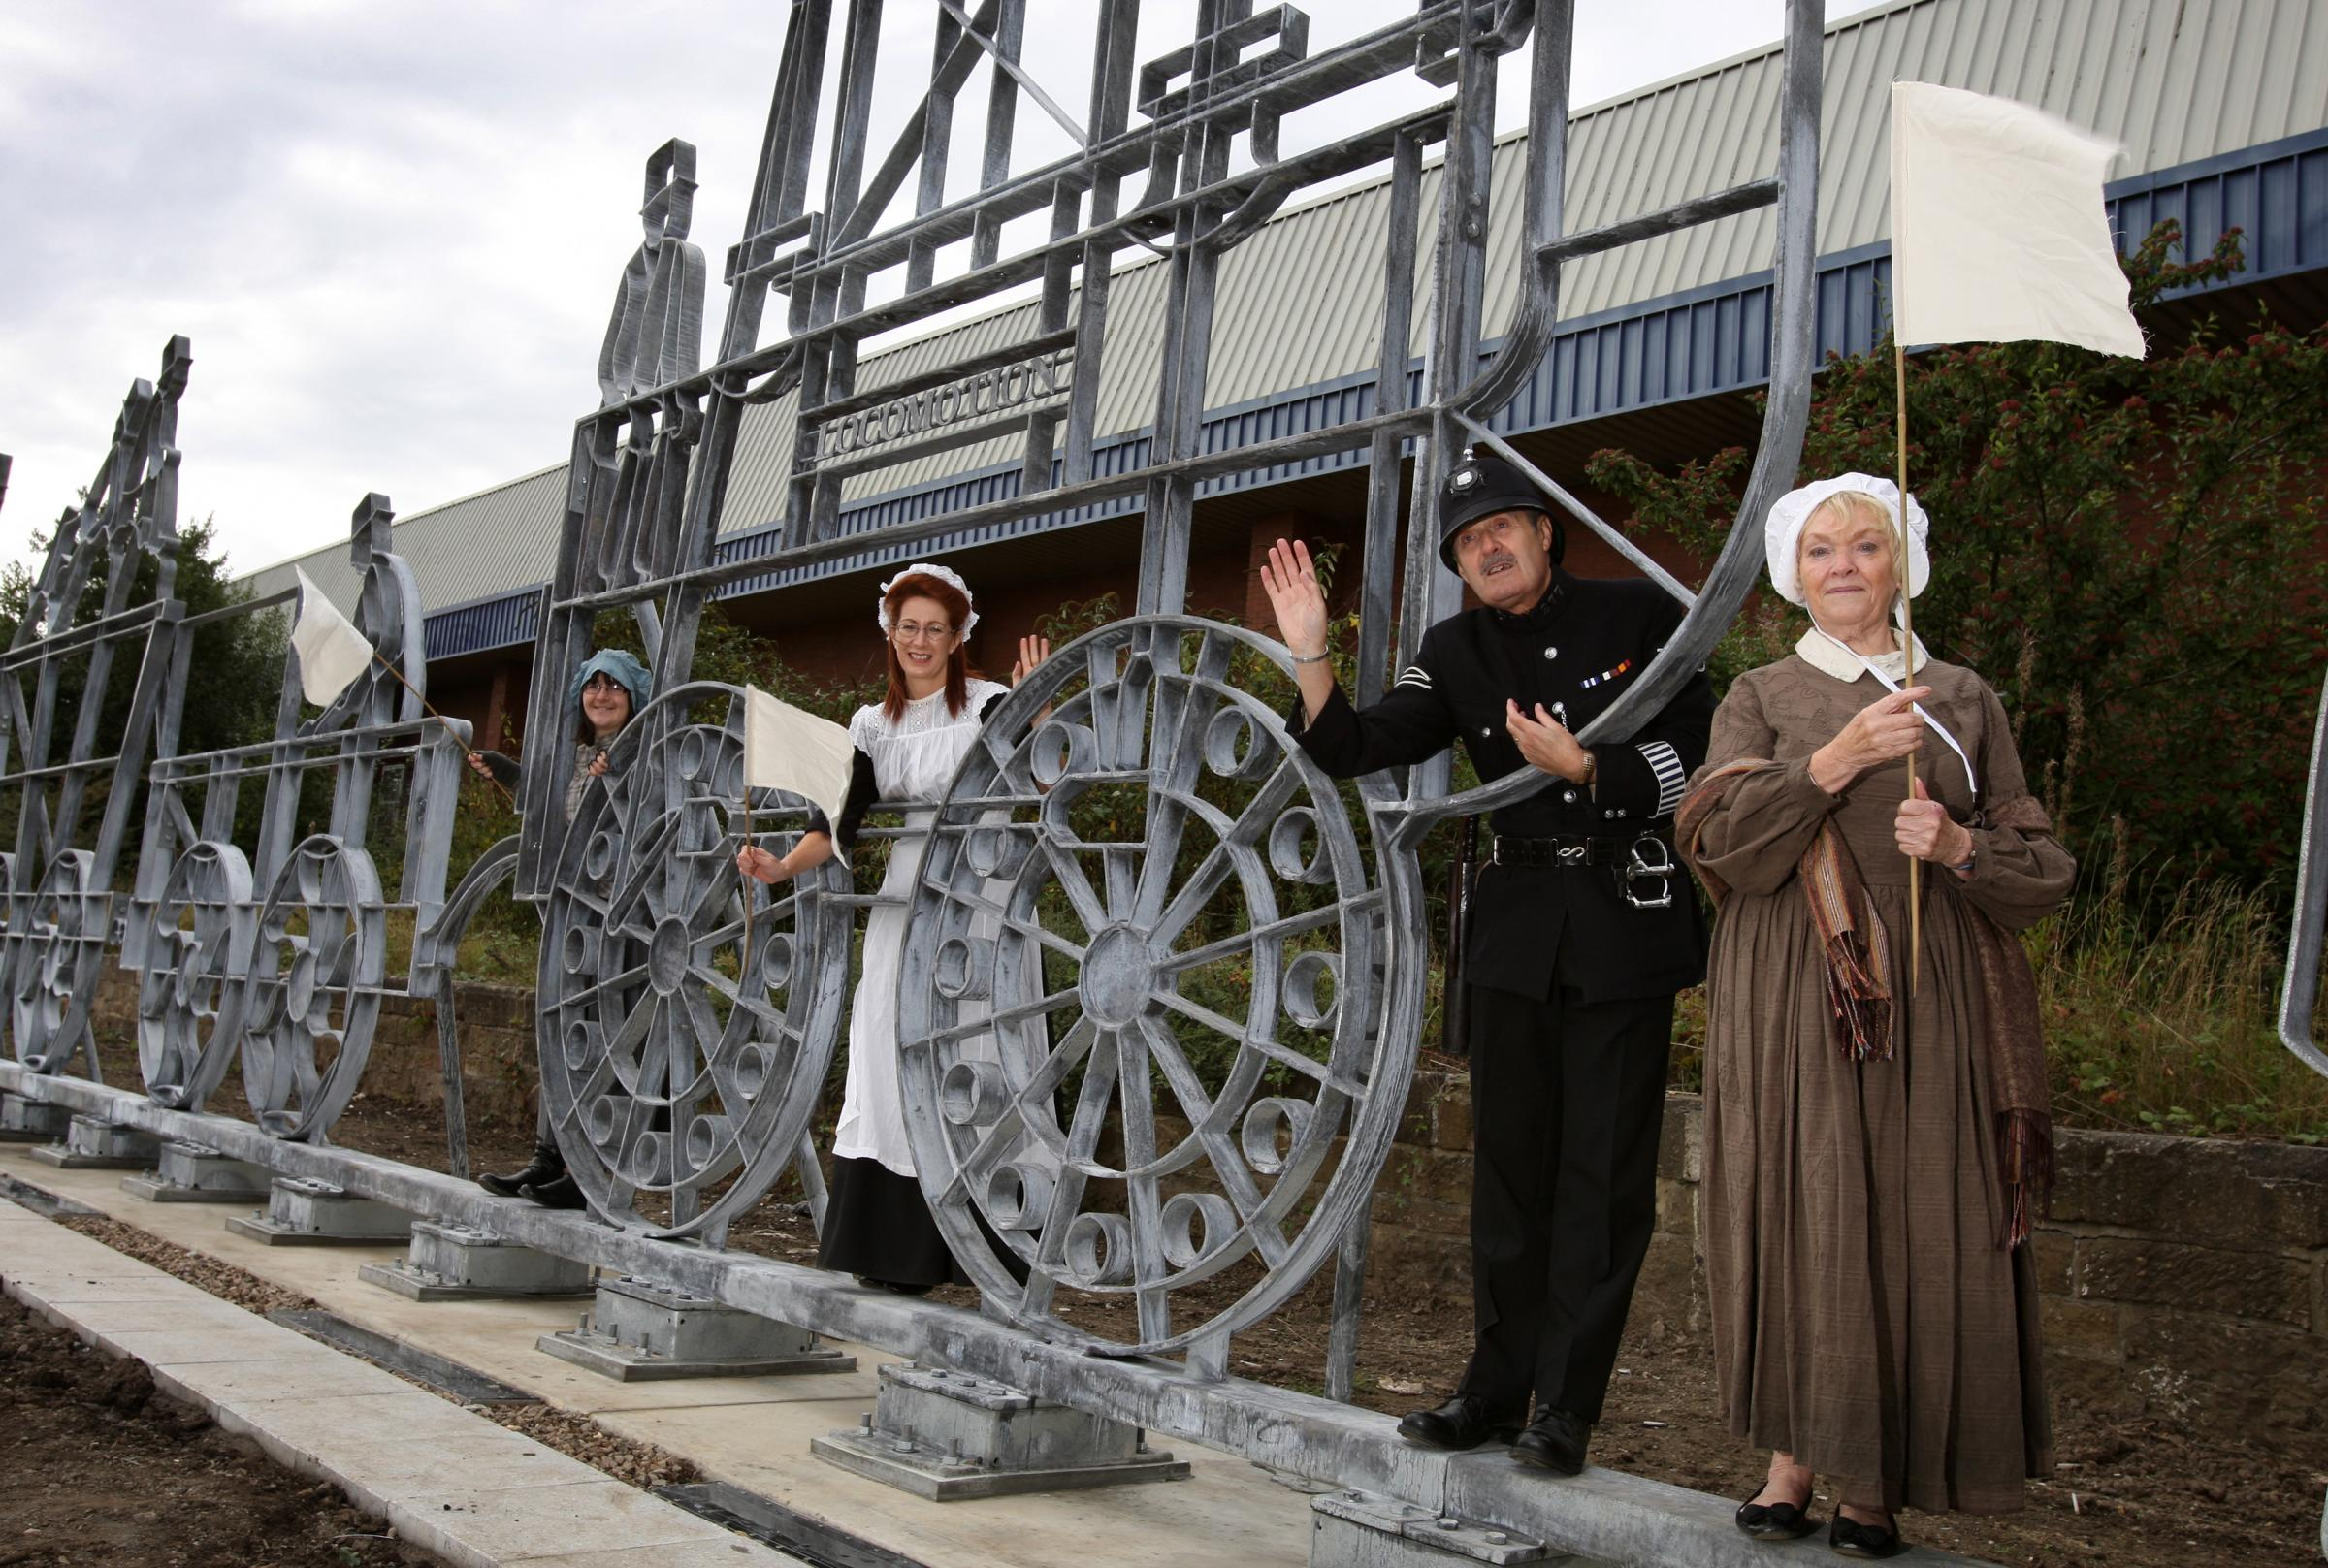 Victorian re-enactors with the new life-sized sculpture of the first train to travel along the Stockton-Darlington Railway, which has been installed next to the new St John's Crossing junction in Stockton.